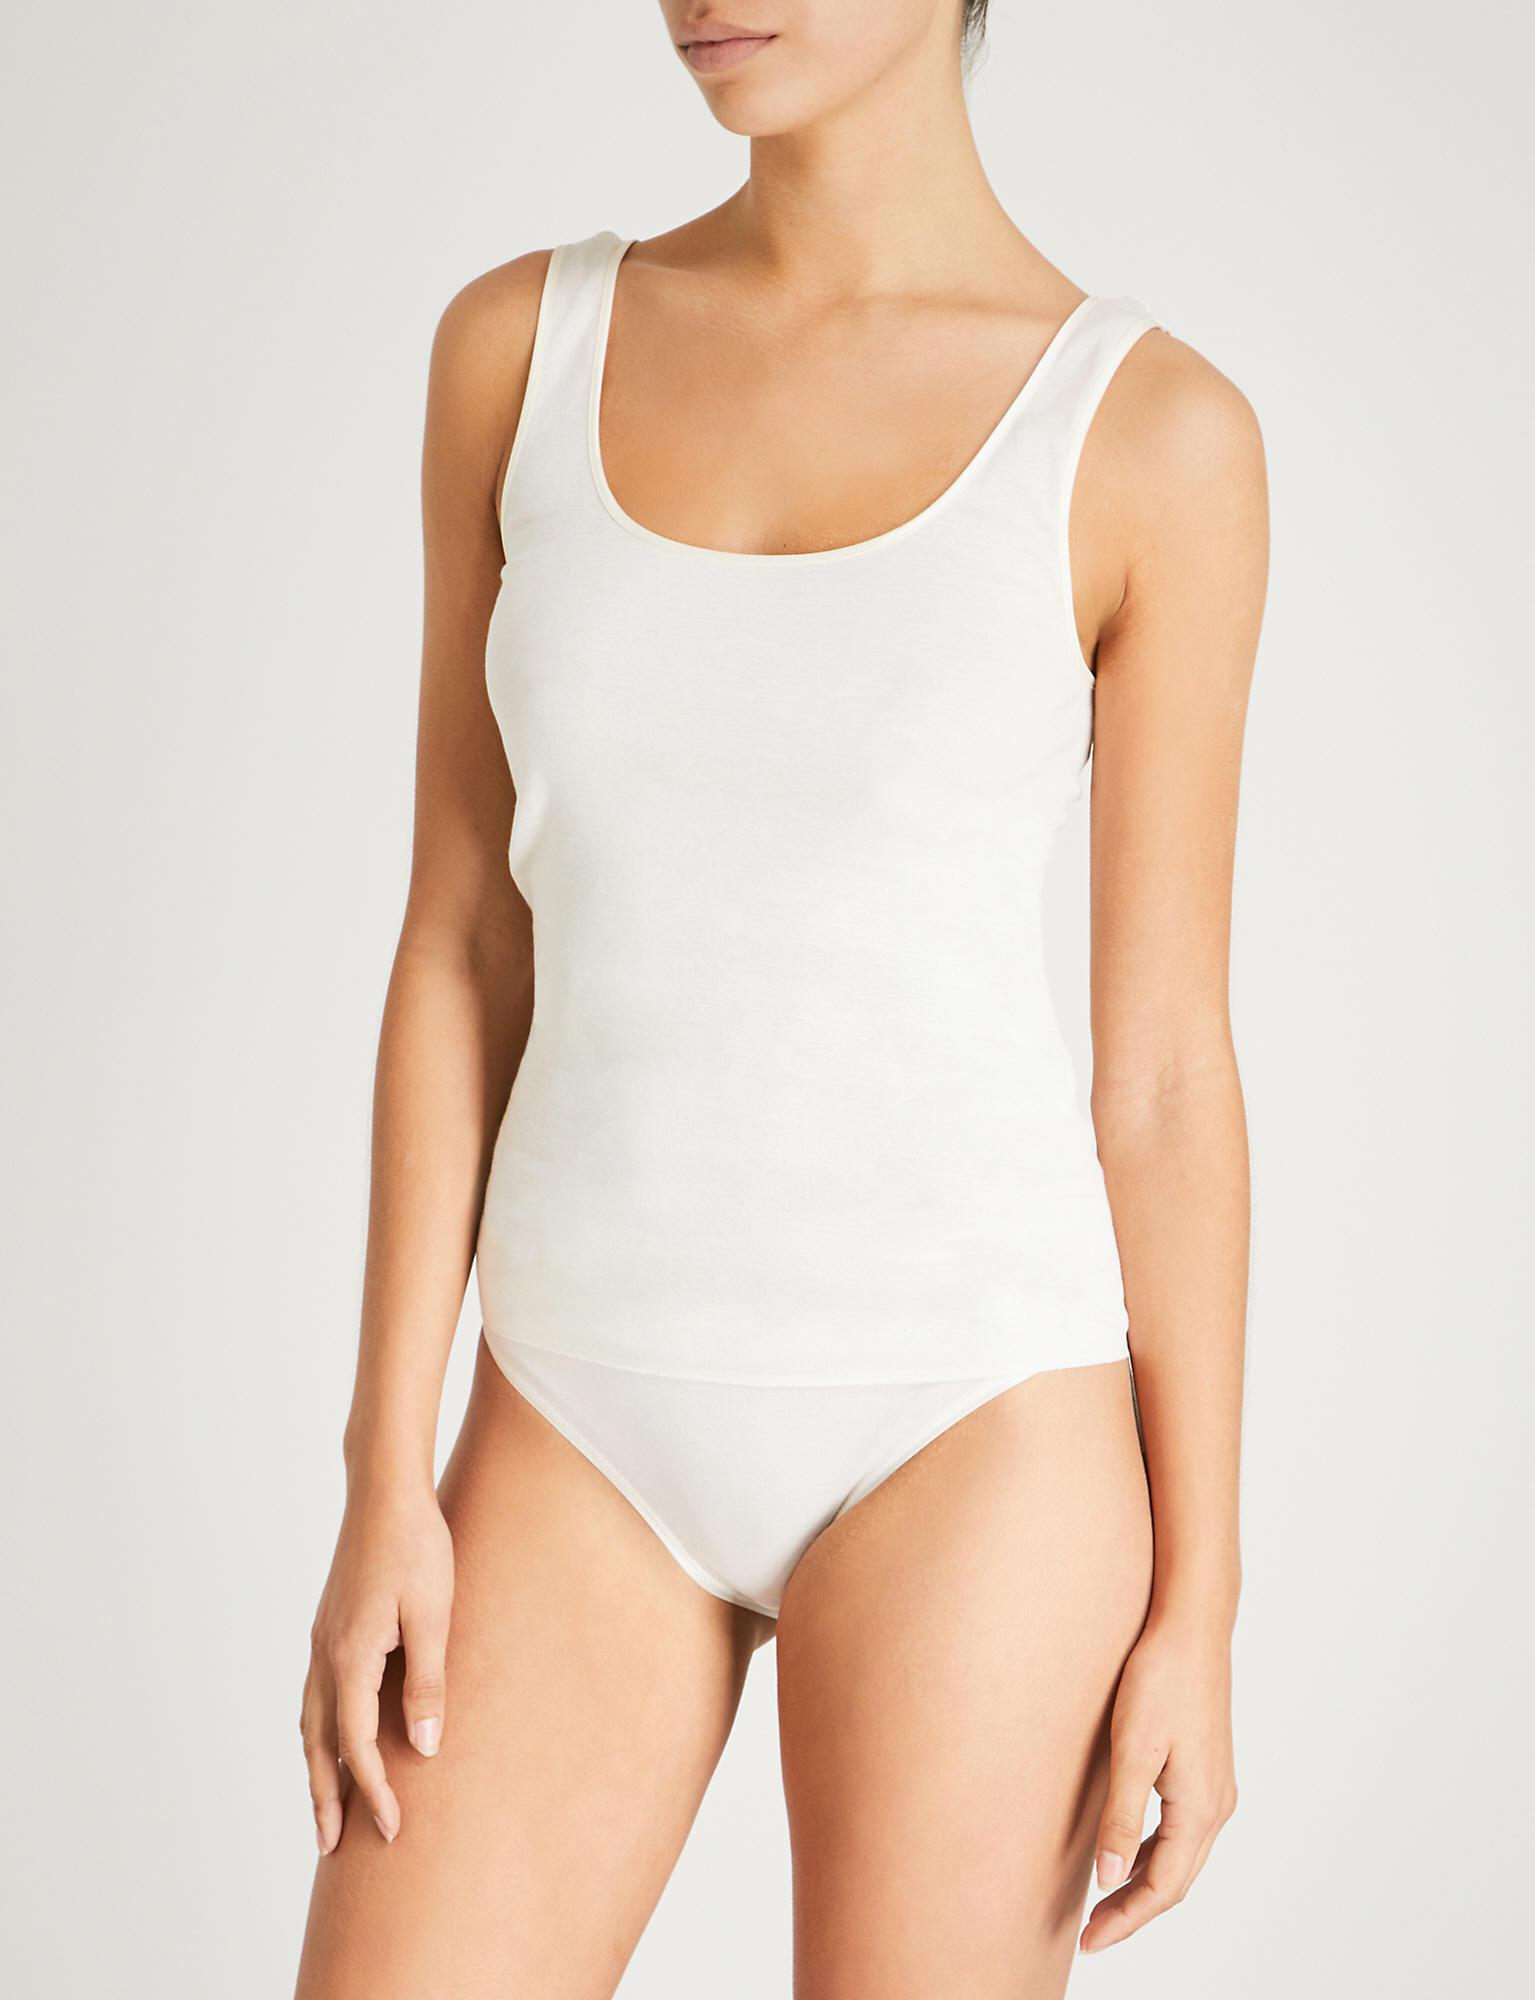 997c2678bd Hanro Seamless Cotton Vest Top in White - Lyst